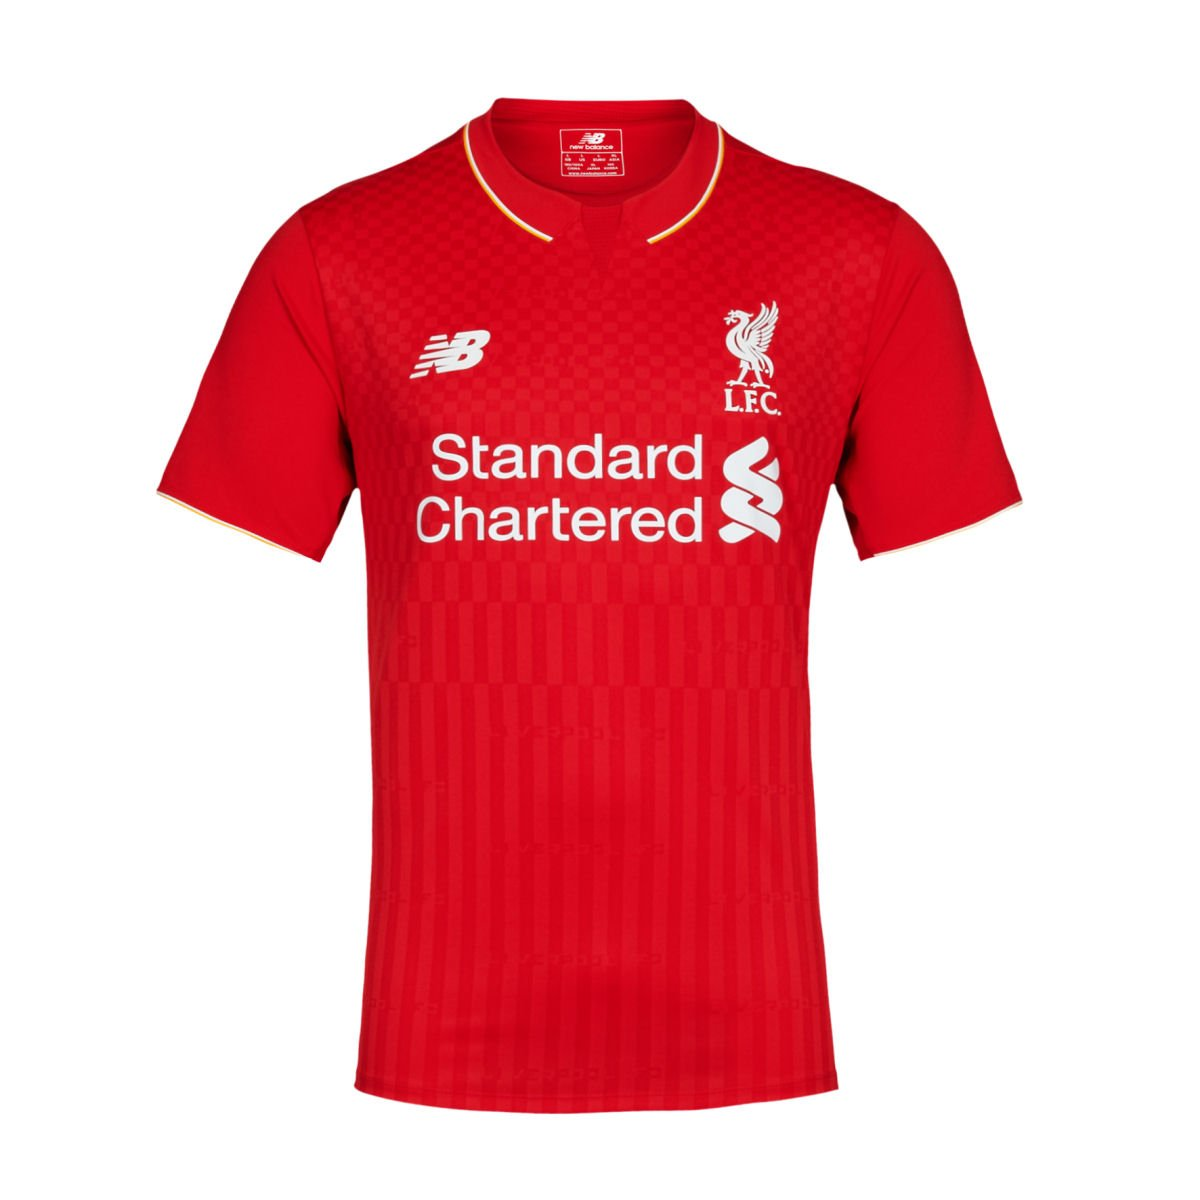 58056fe2b Amazon.com   2015-16 Liverpool Home Football Soccer T-Shirt Jersey (Steven  Gerrard 8) - Kids   Sports   Outdoors